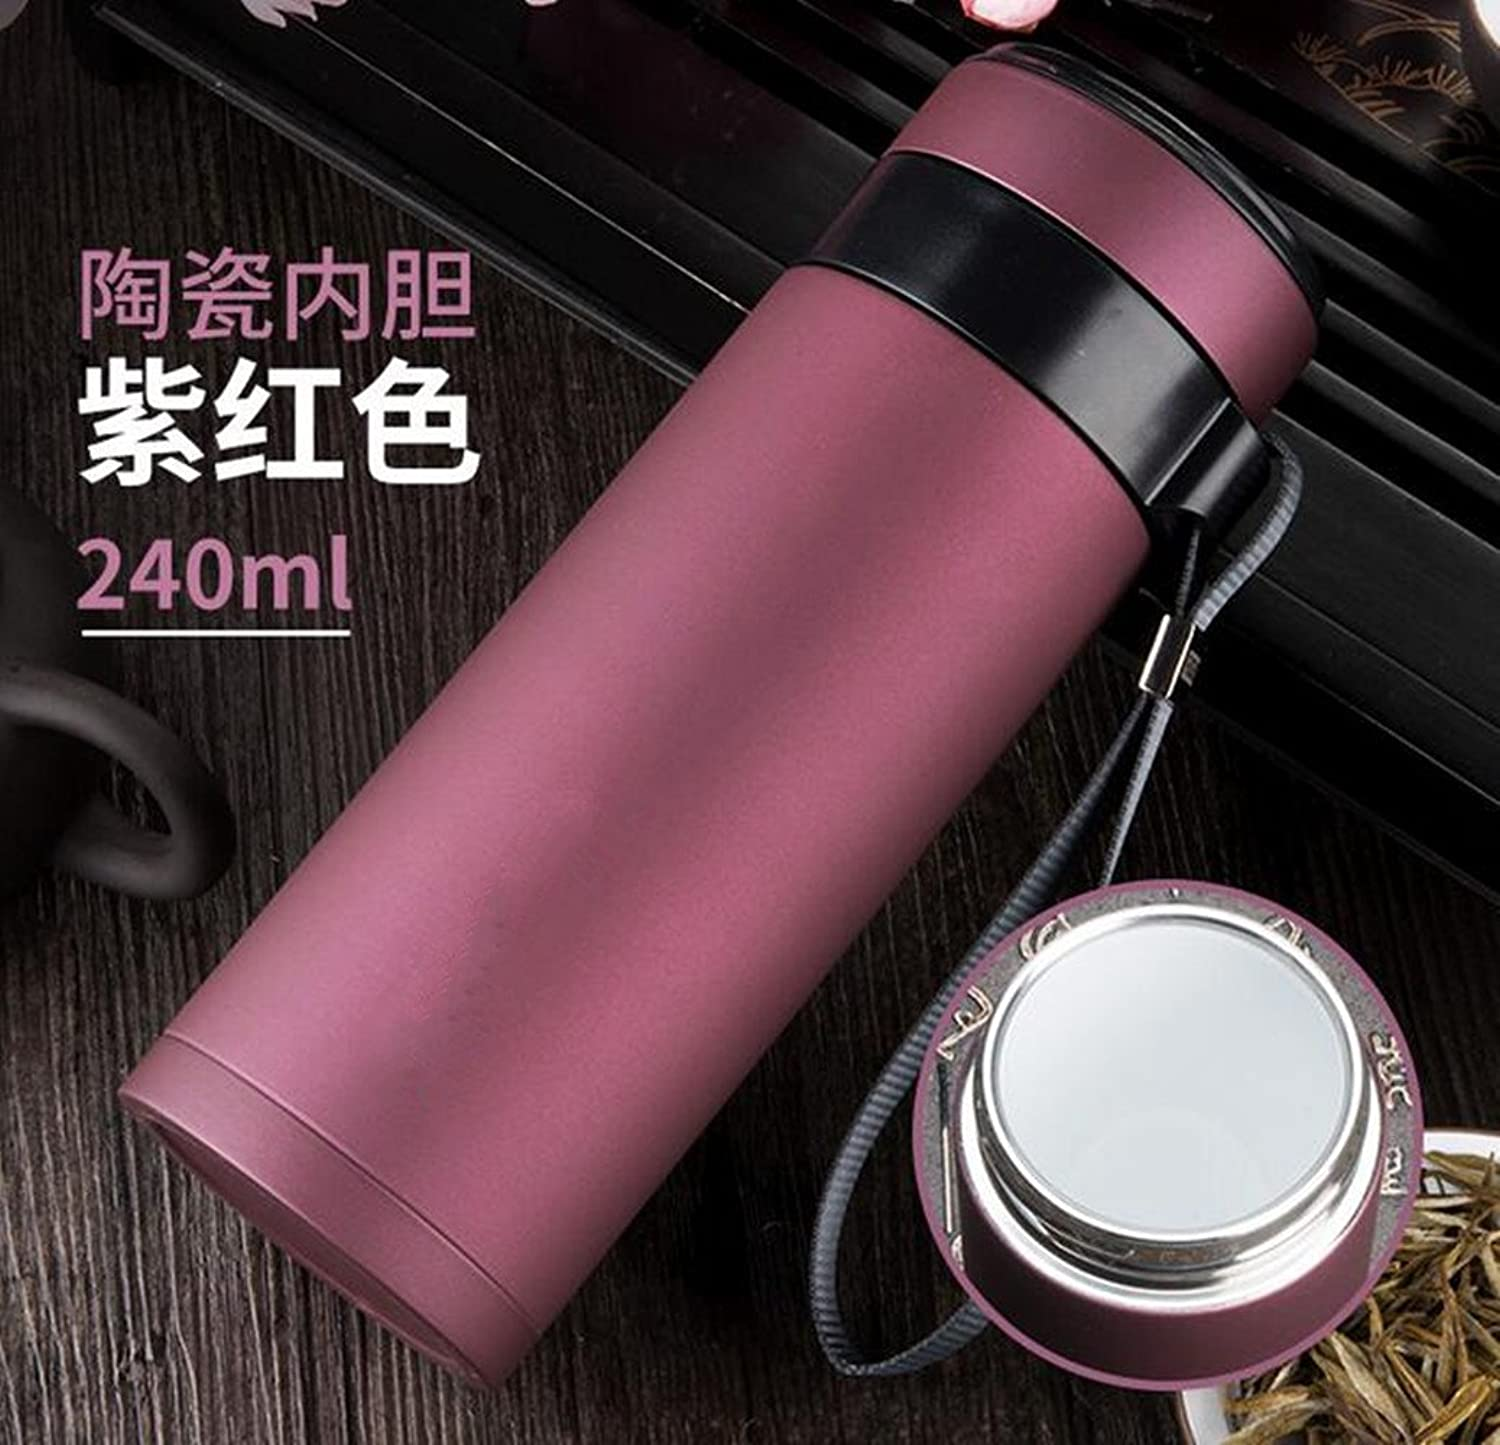 Water Cup Purple Sand Cup Ceramic Liner HighGrade Tea Cup Portable Business Eco Cup